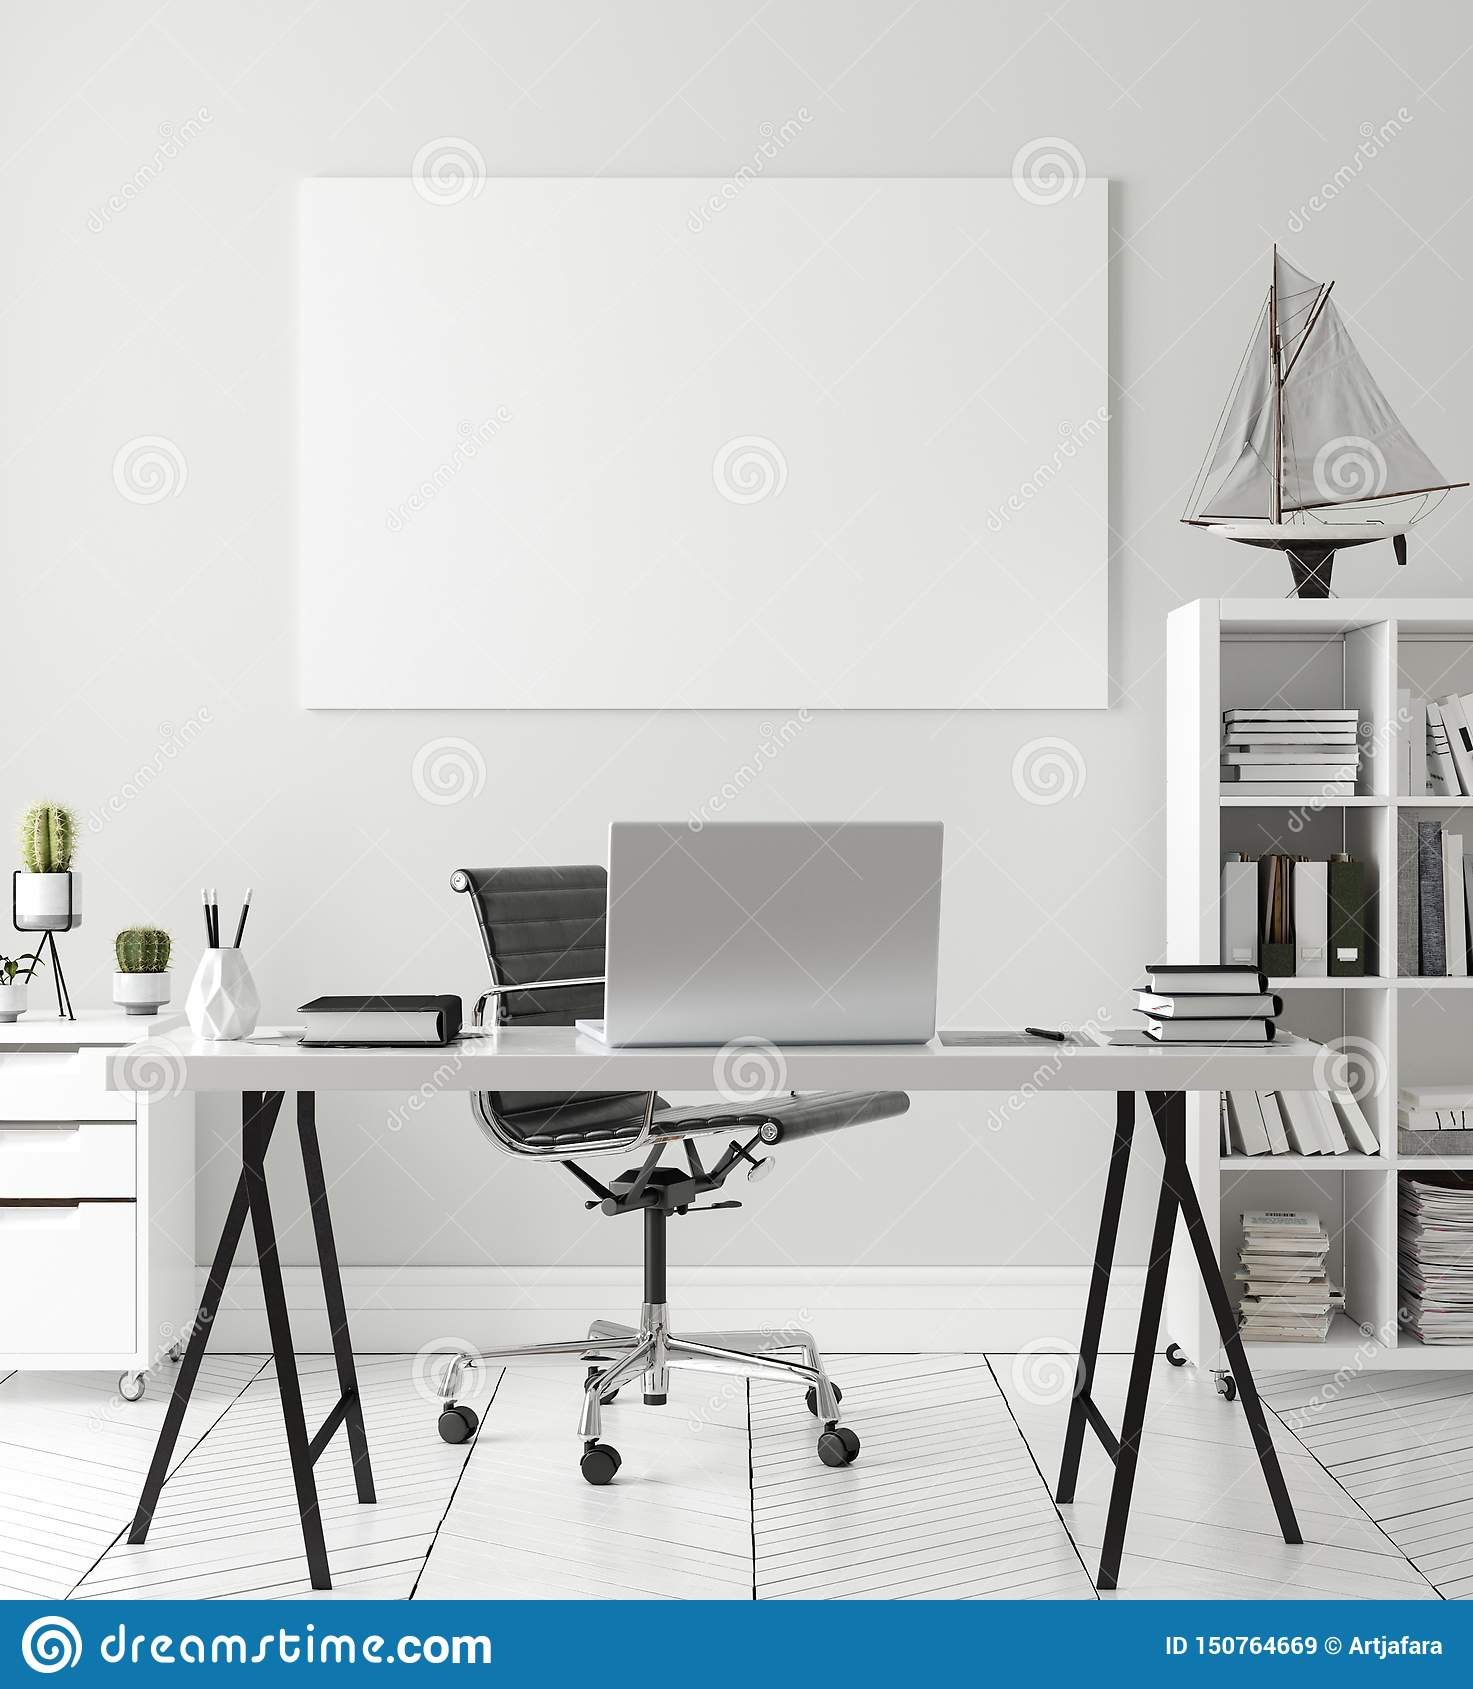 Poster Wall Mock Up In Home Interior Background Home Office Scandinavian Style Stock Illustration Illustration Of Stool Loft 150764669,Best Tiny House Designs